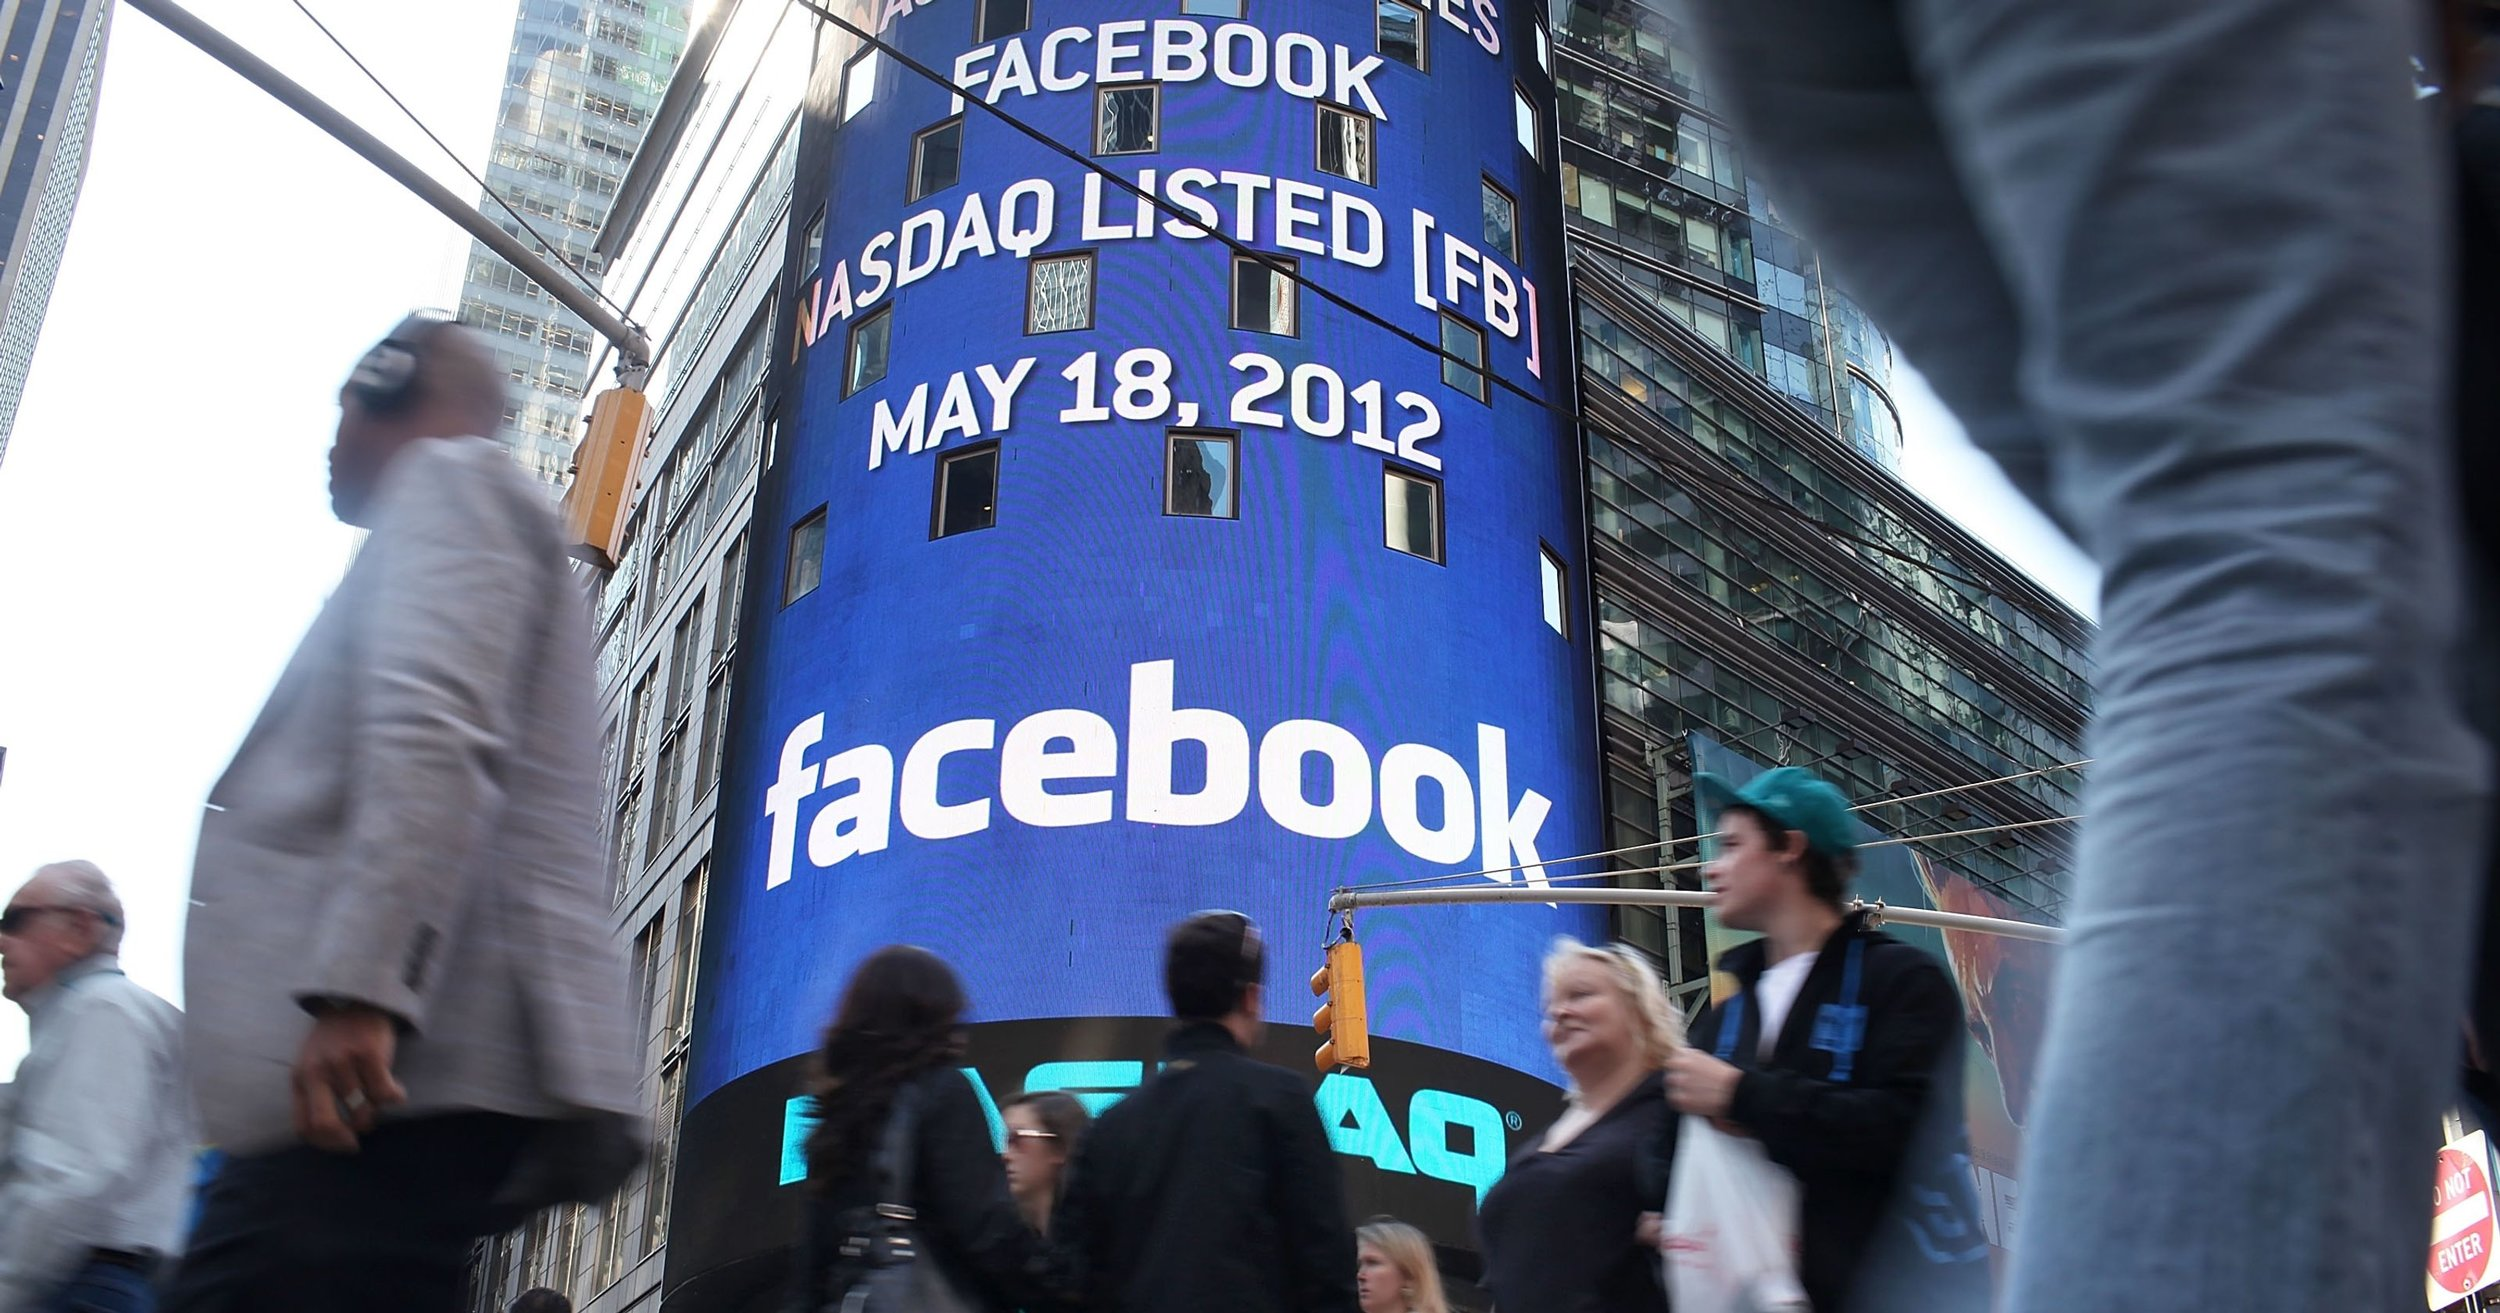 How to Prepare for a Crisis You Couldn't Possibly Predict - by Chris Clearfield and András Tilcsik. Harvard Business Review (pdf)On the morning of May 18, 2012, at precisely 11:05, Nasdaq planned to execute the first trade in in Facebook's hotly anticipated initial public offering... But when 11:05 arrived, nothing happened…